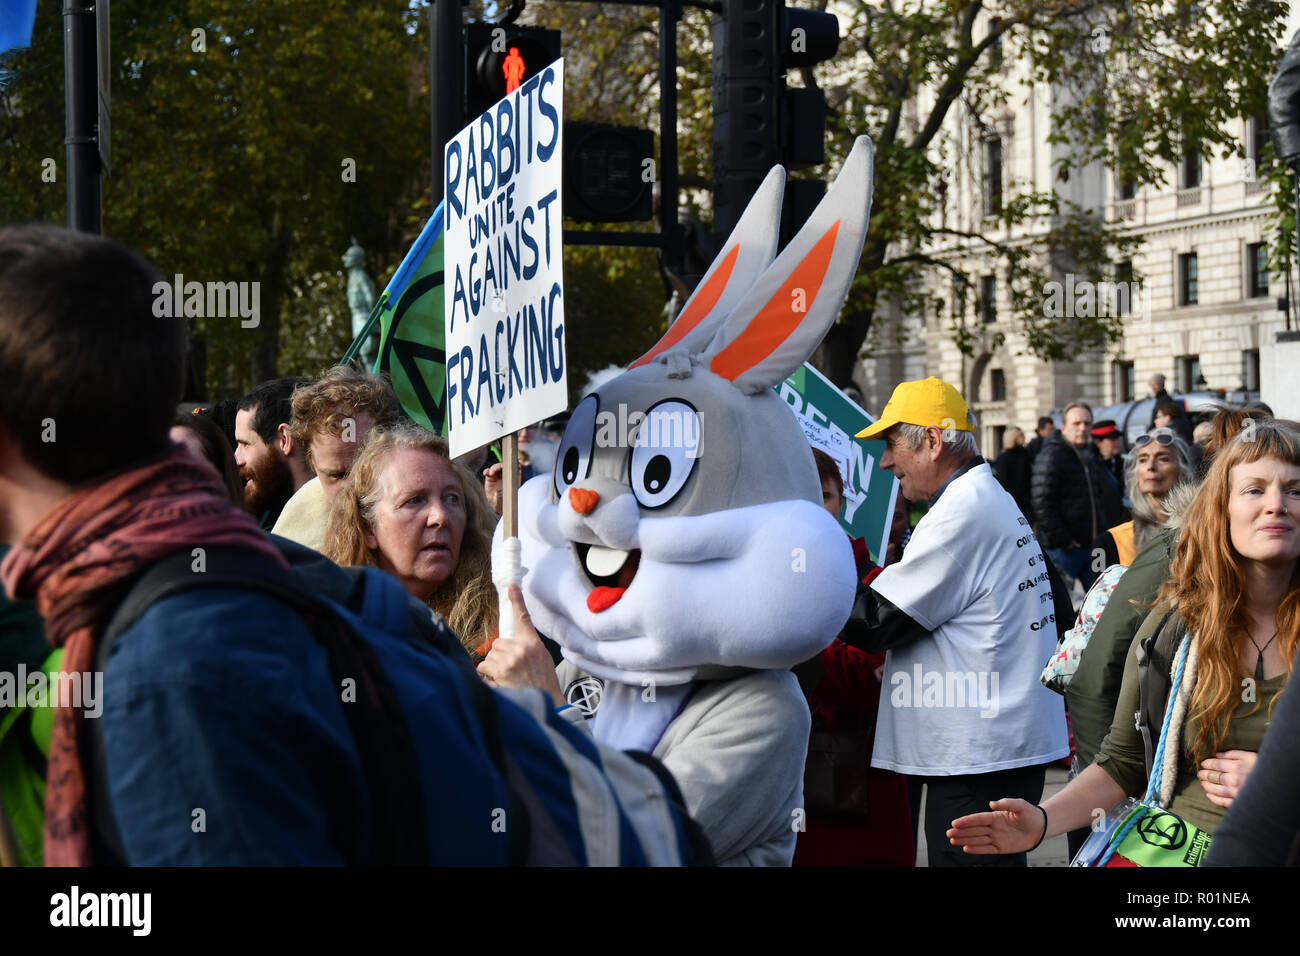 London, UK. 31st October, 2018. Declaration of Rebellion protest sit-in Against the British Government For Criminal Inaction in the Face of Climate Change Catastrophe and Ecological Collapse to have Zero carbon by 2025 in Parliament Square on 31 October 2018, London, UK. Credit: Picture Capital/Alamy Live News Stock Photo